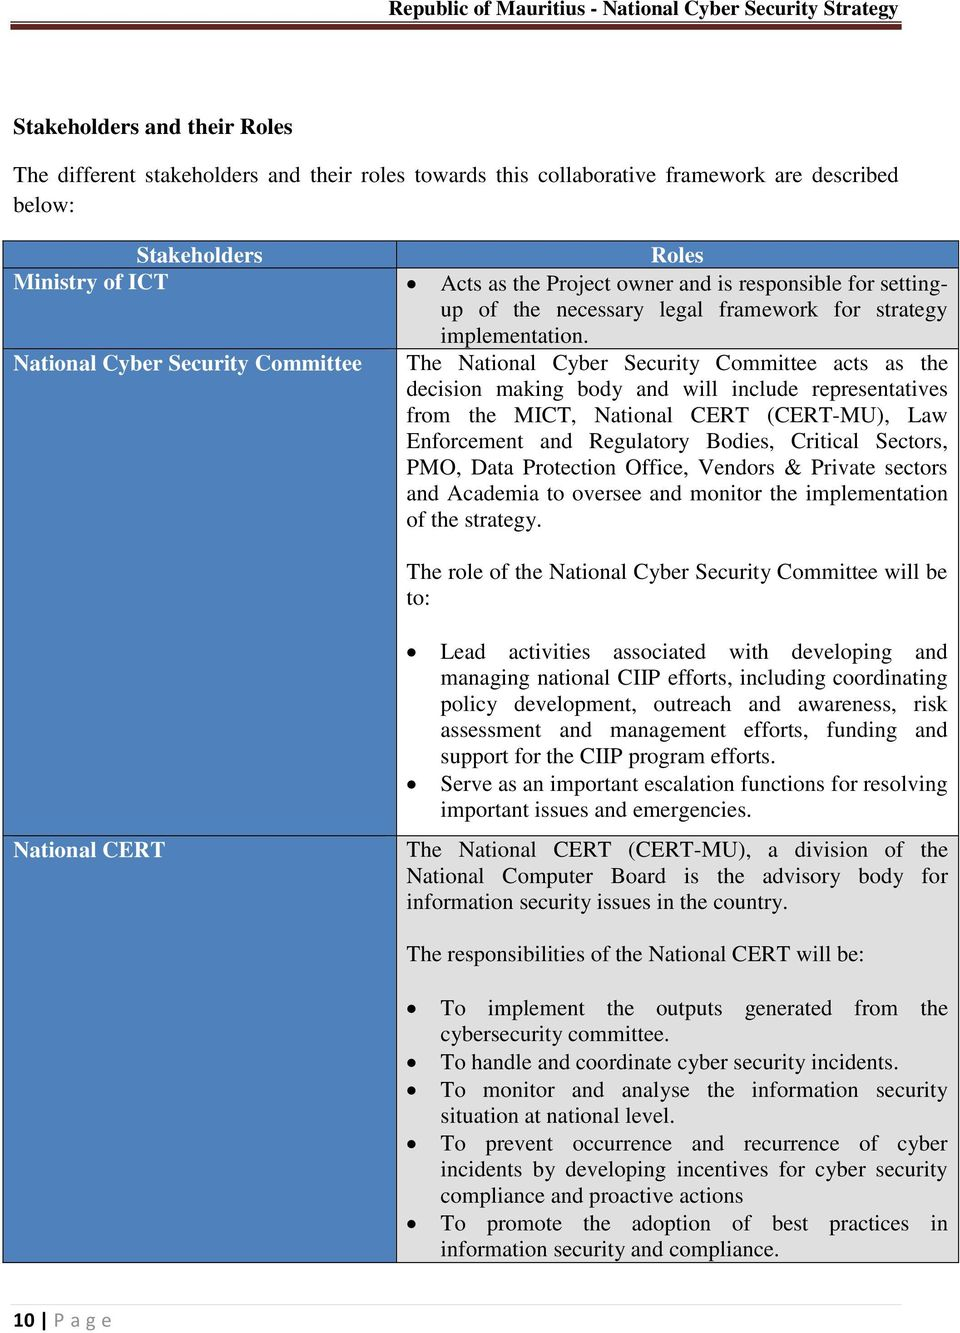 National Cyber Security Committee The National Cyber Security Committee acts as the decision making body and will include representatives from the, National CERT (), Law Enforcement and Regulatory